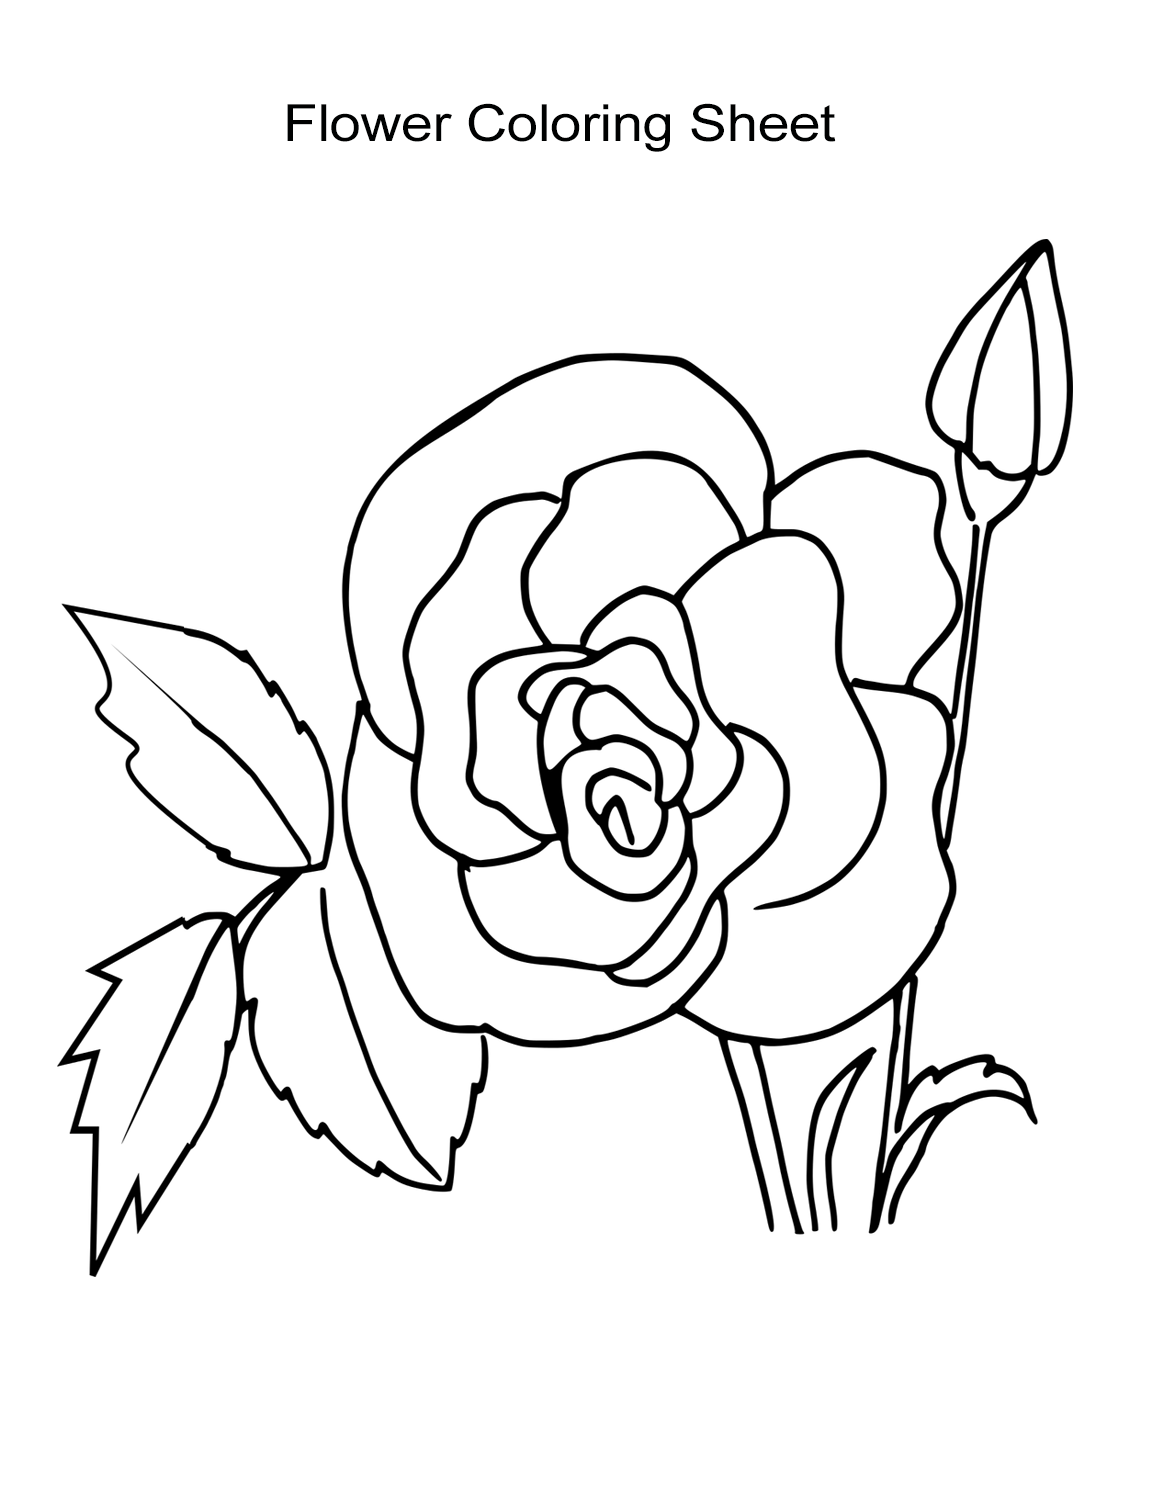 coloring flower tulip coloring pages download and print tulip coloring pages flower coloring